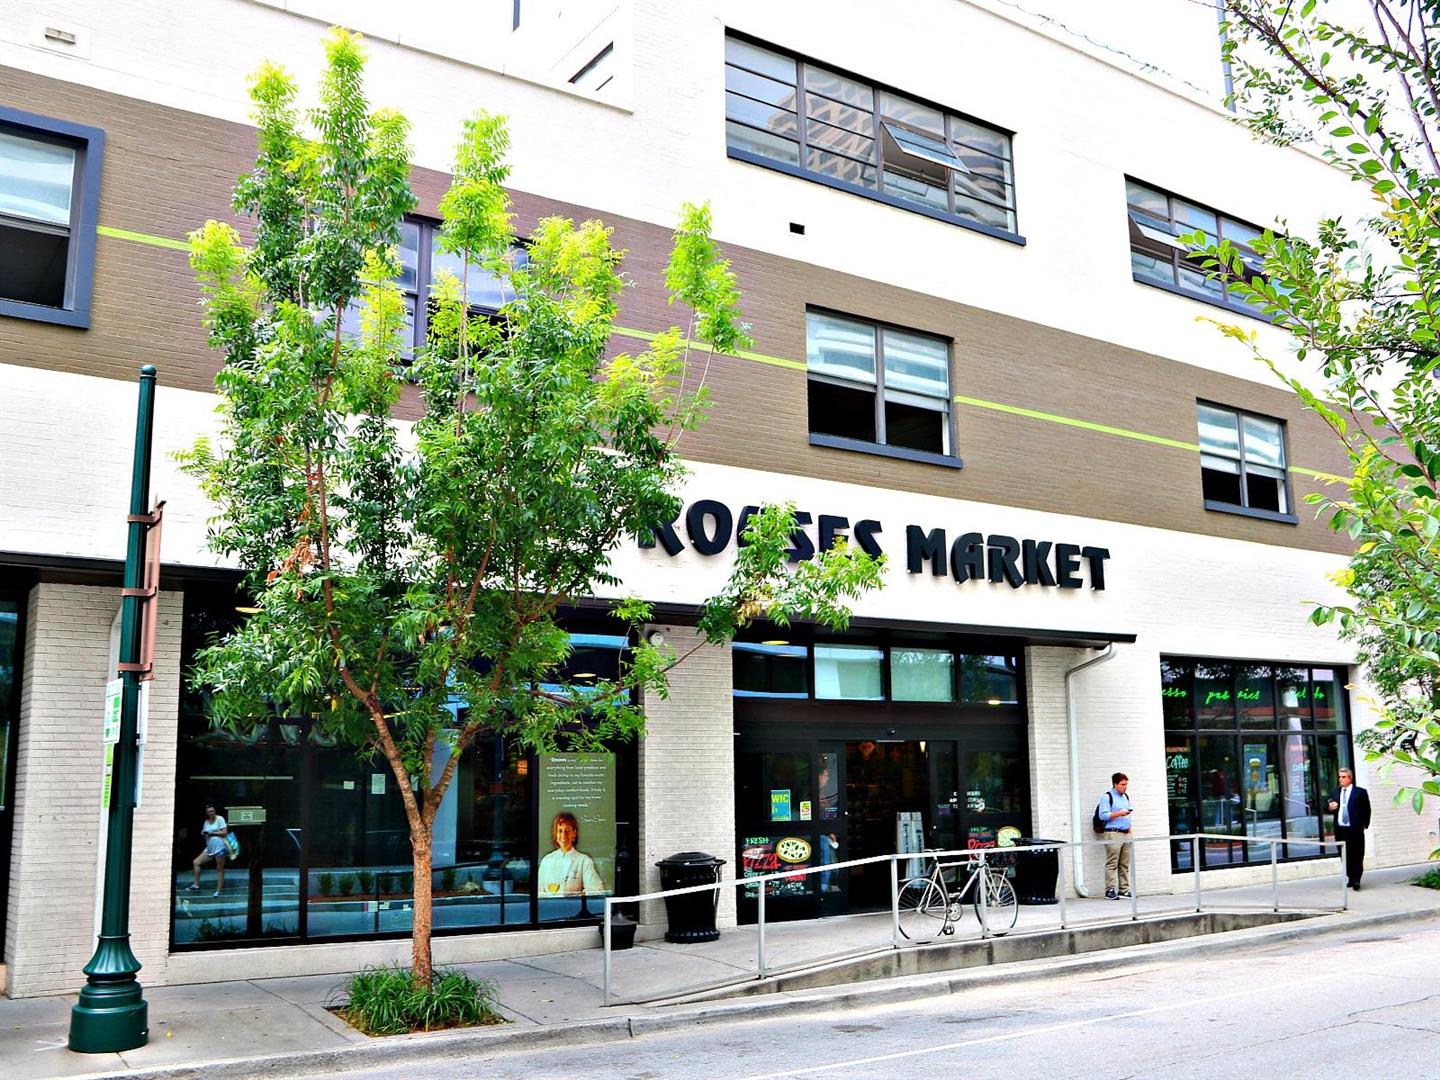 RousesSupermarketWarehouseDistrict.jpg